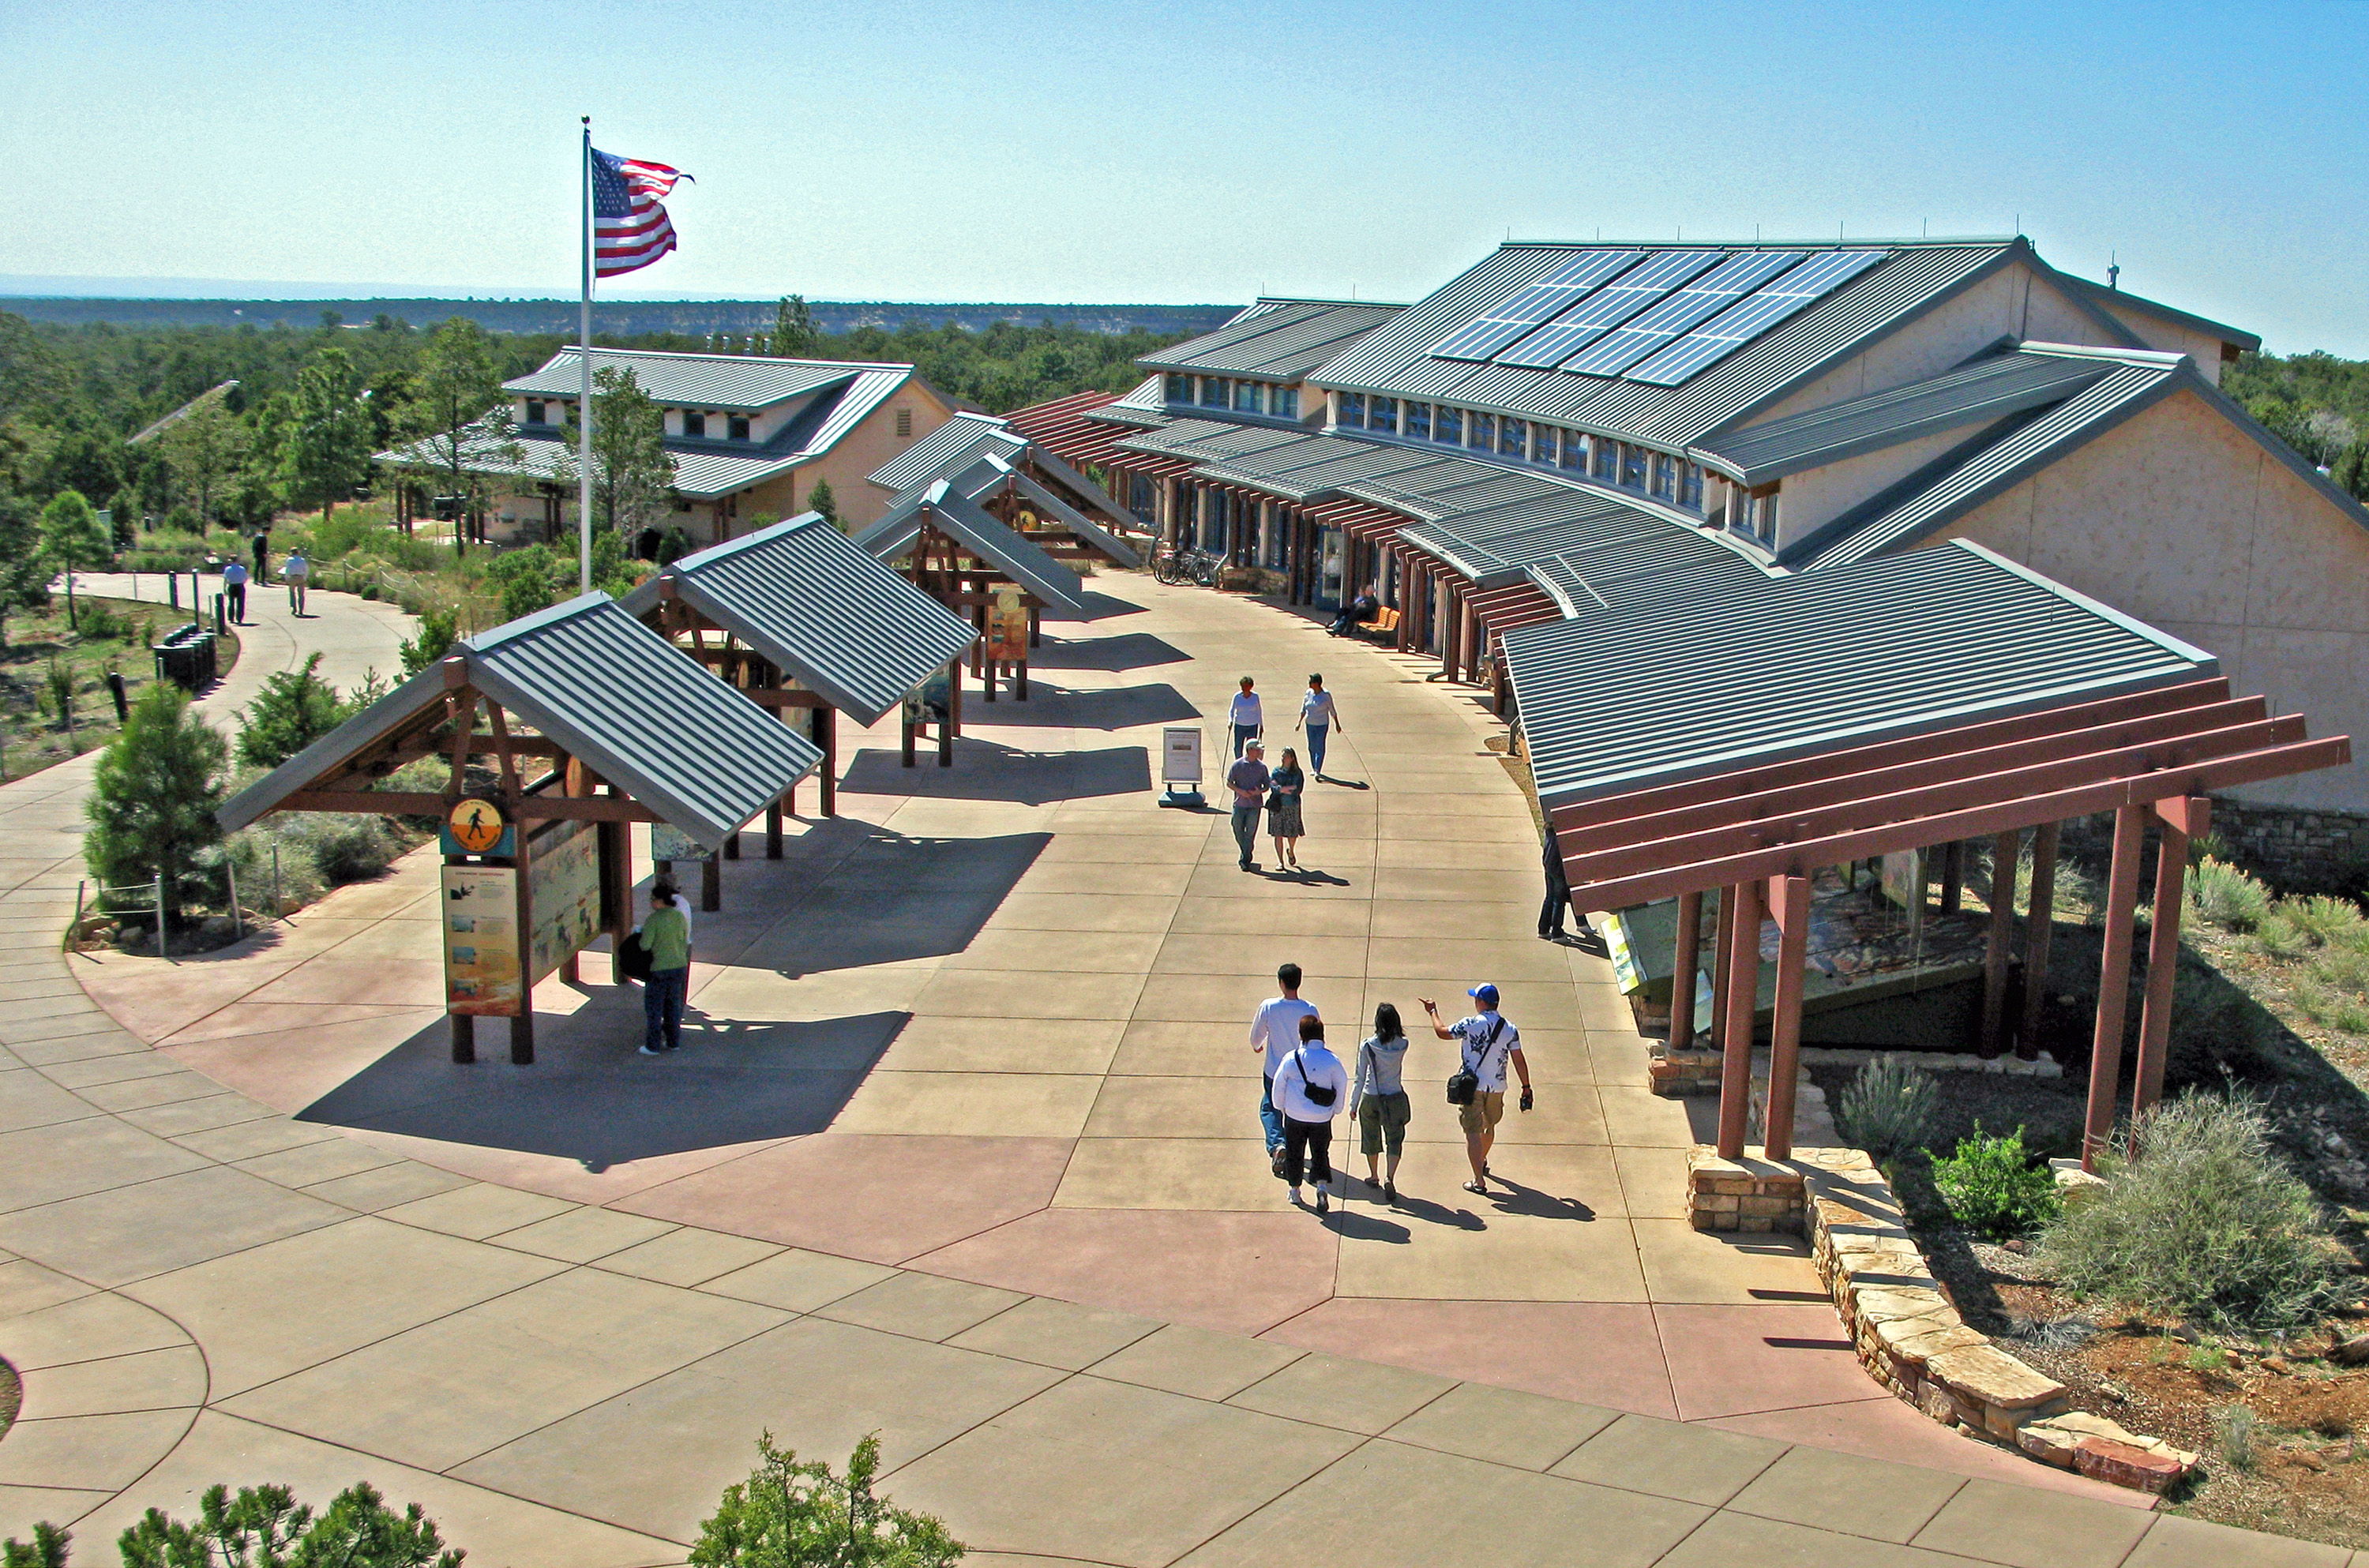 File:Grand Canyon Visitor Center.jpg - Wikimedia Commons